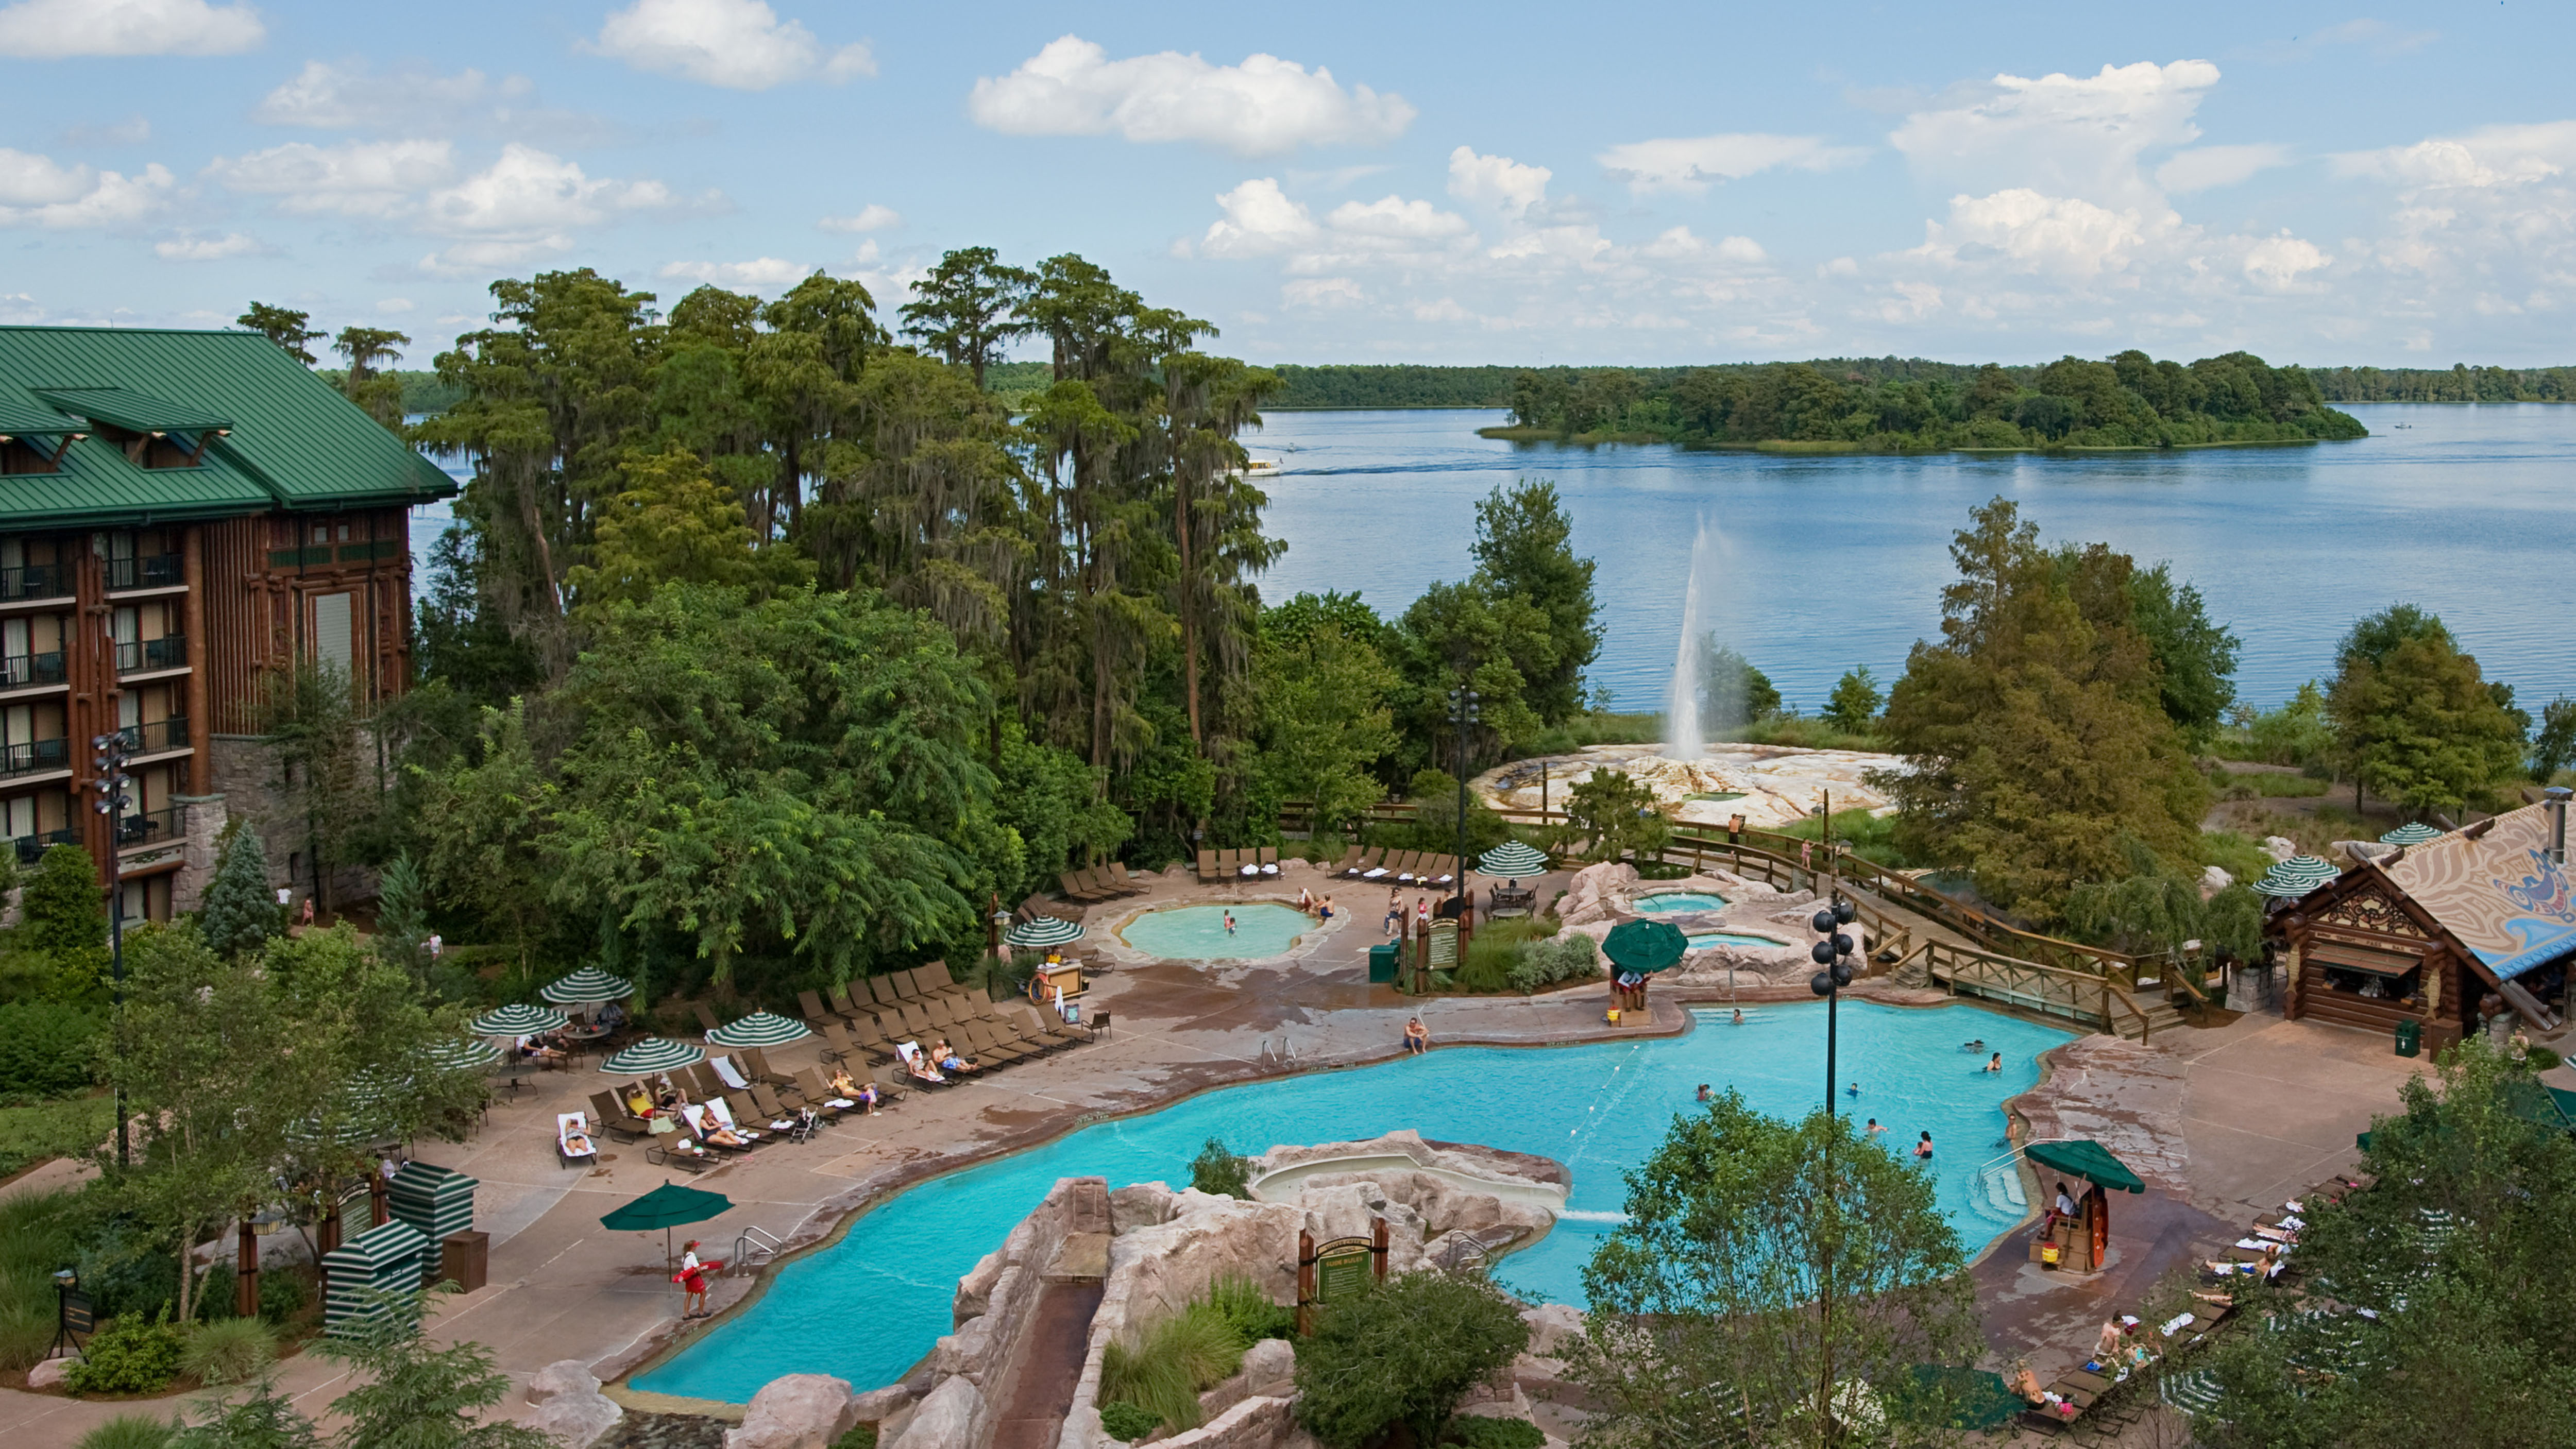 Photo of Wilderness Lodge Resort, one of the most spread out Disney Moderate resorts.